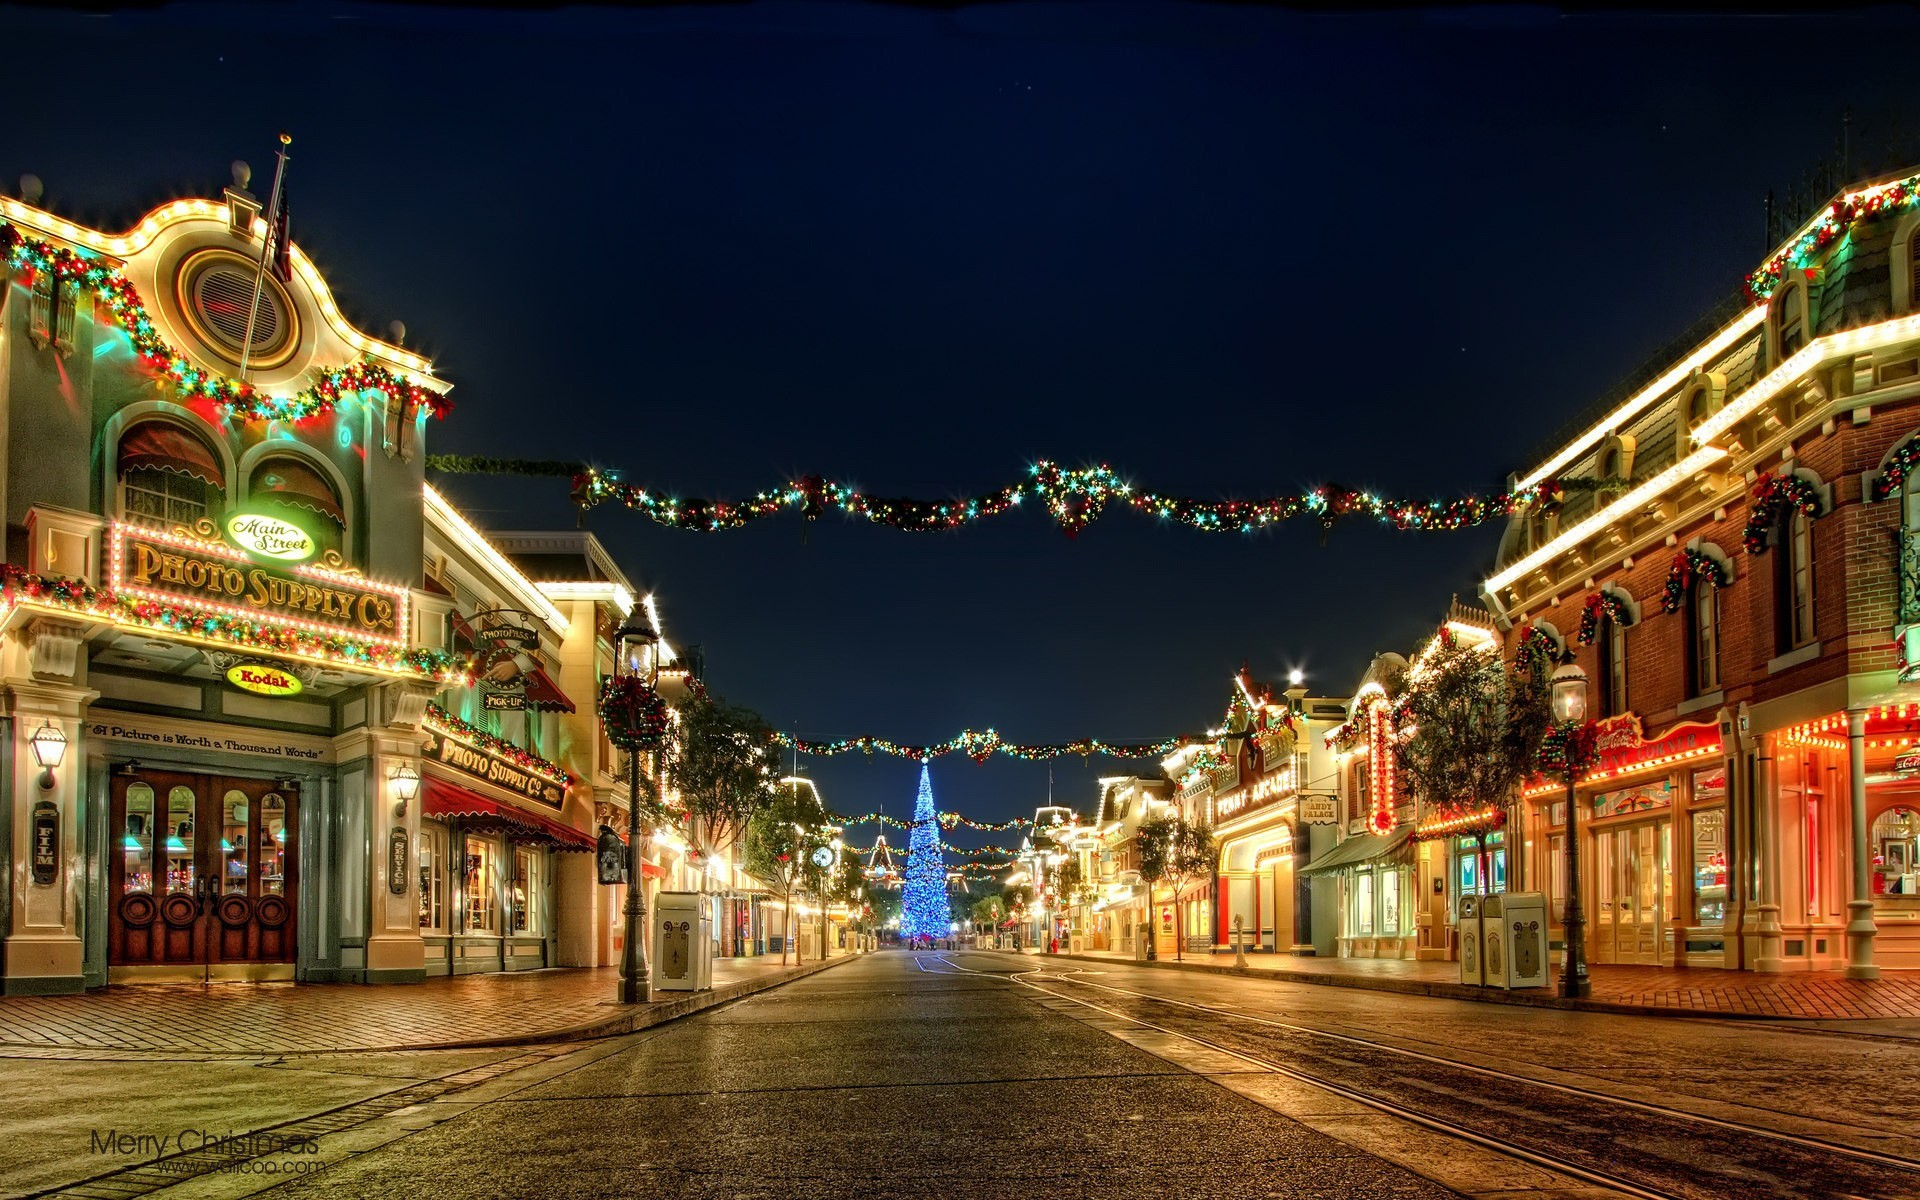 Wallpaper Streets with Christmas lights and ornaments